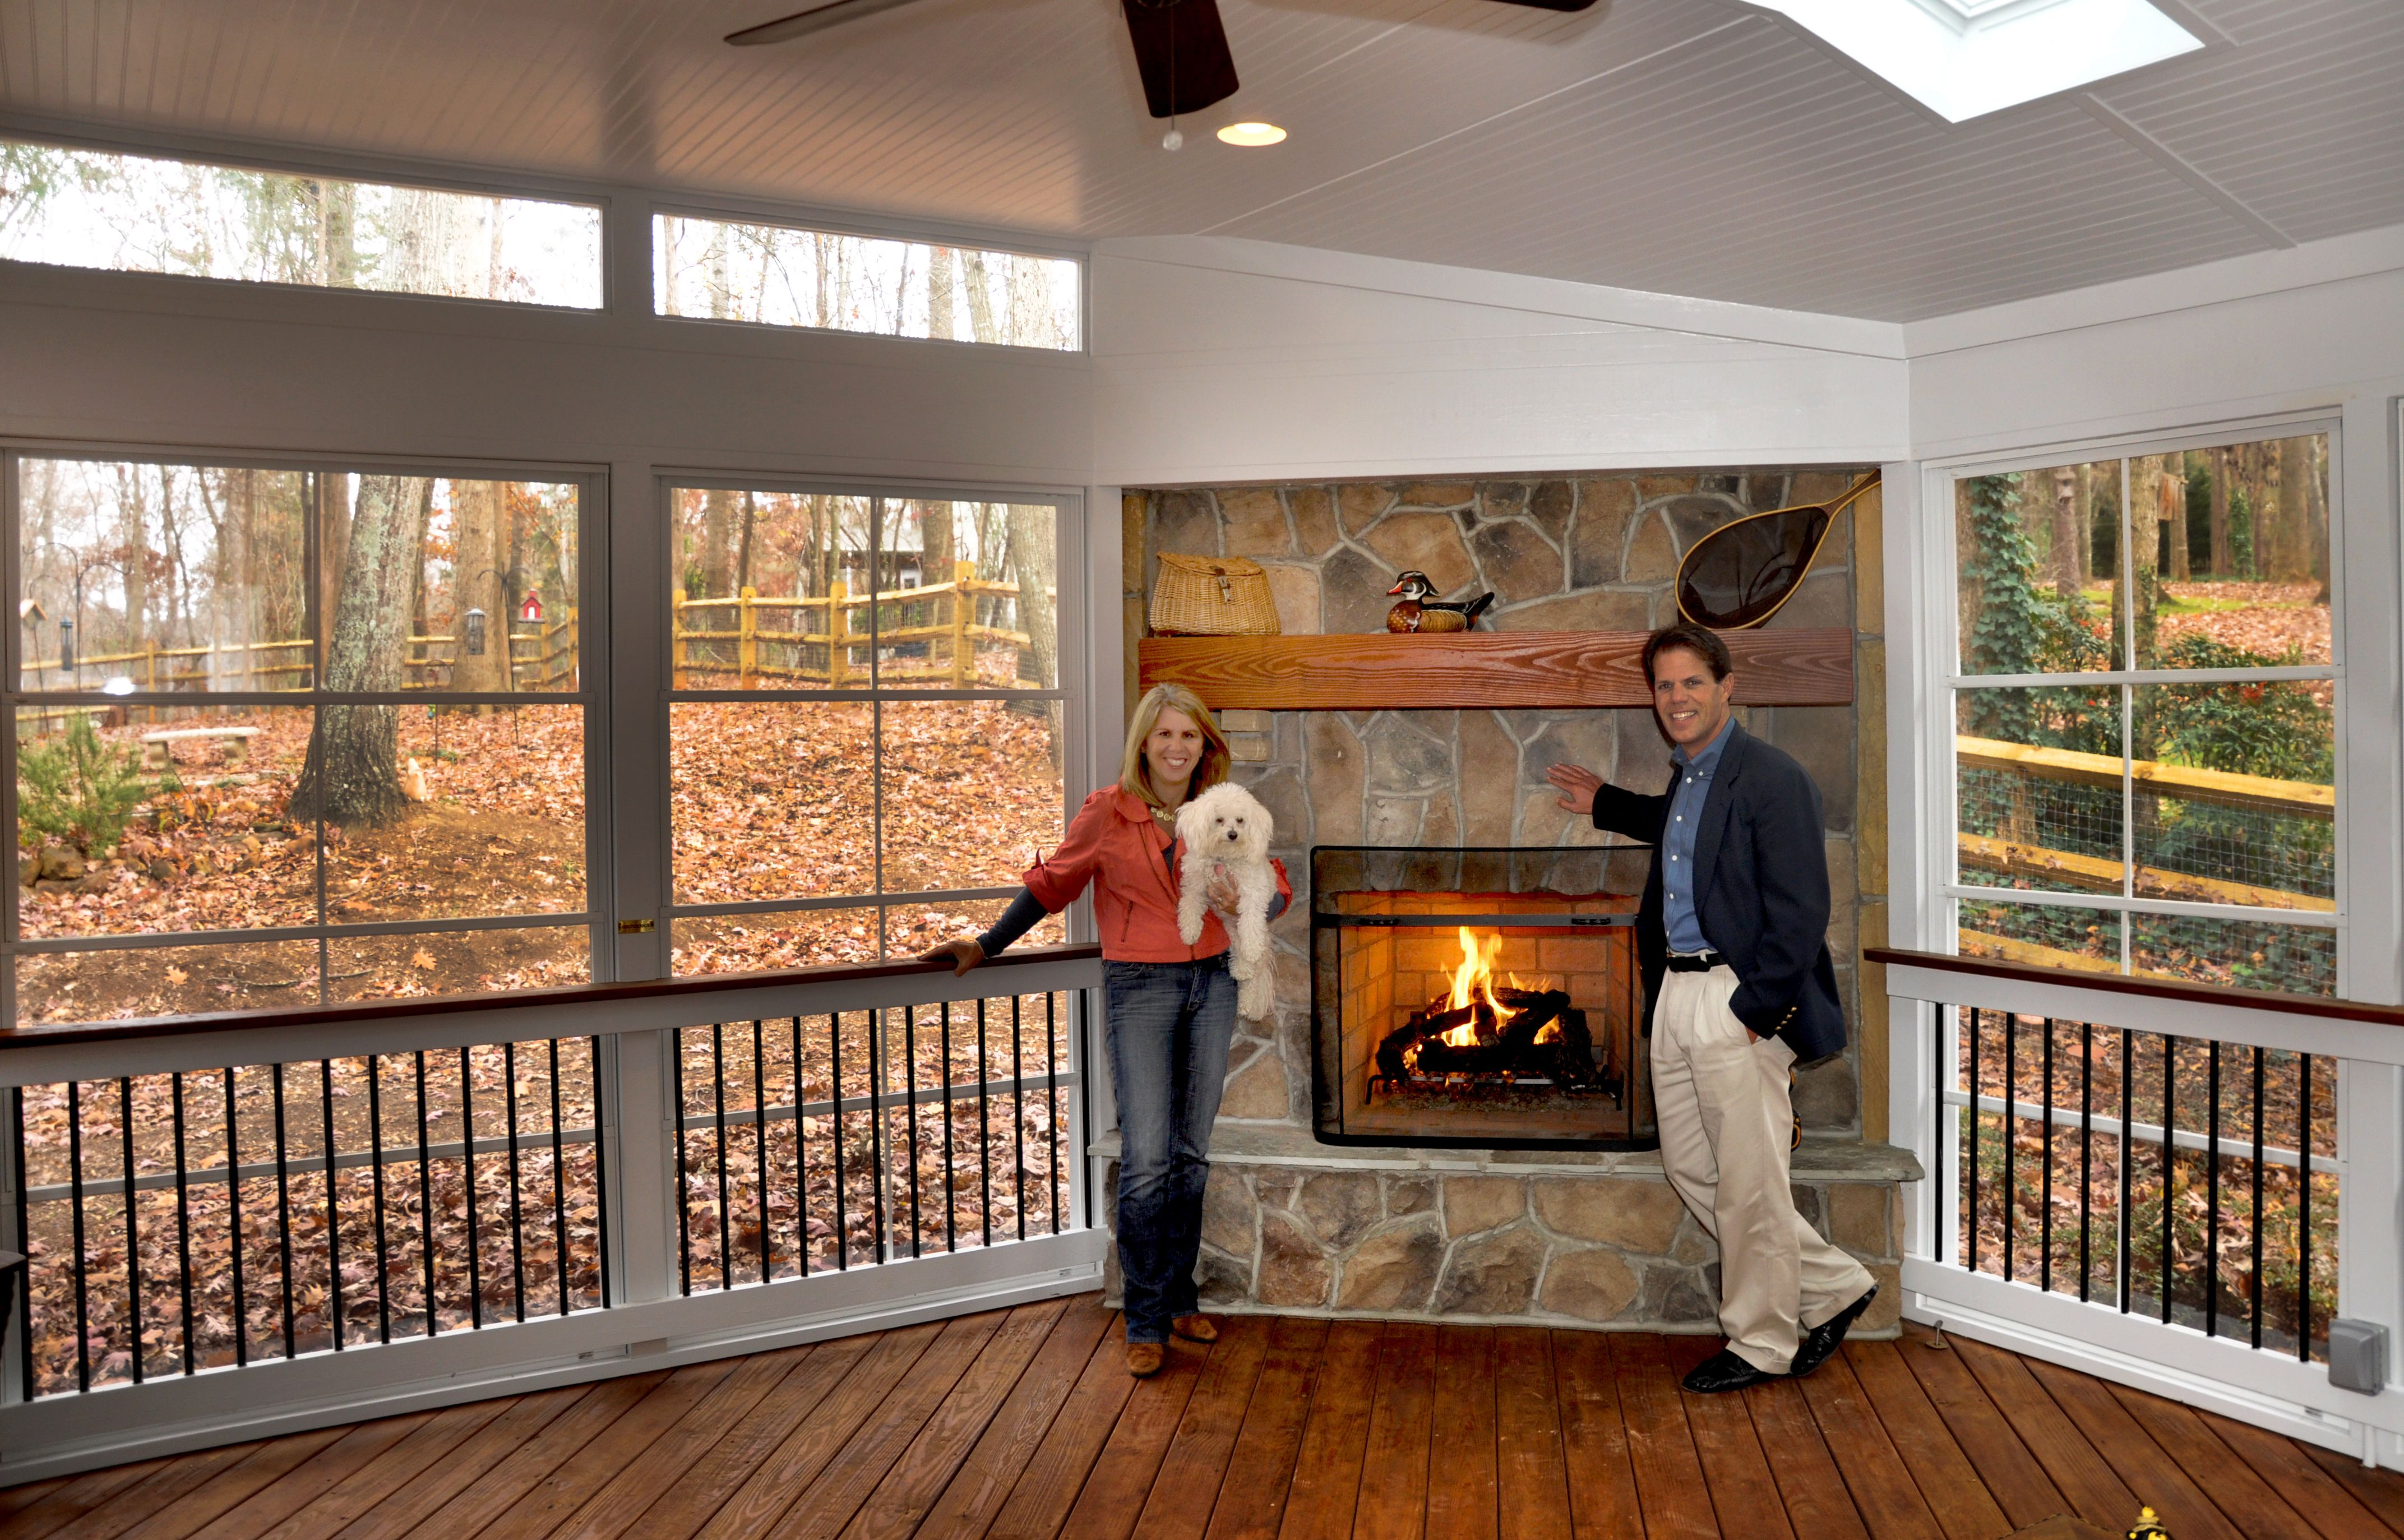 What Is Eze Breeze Raleigh Screen Porch 3 Season Room Builder Eze Breeze Screen Porch In Charlotte With A Wood Burning